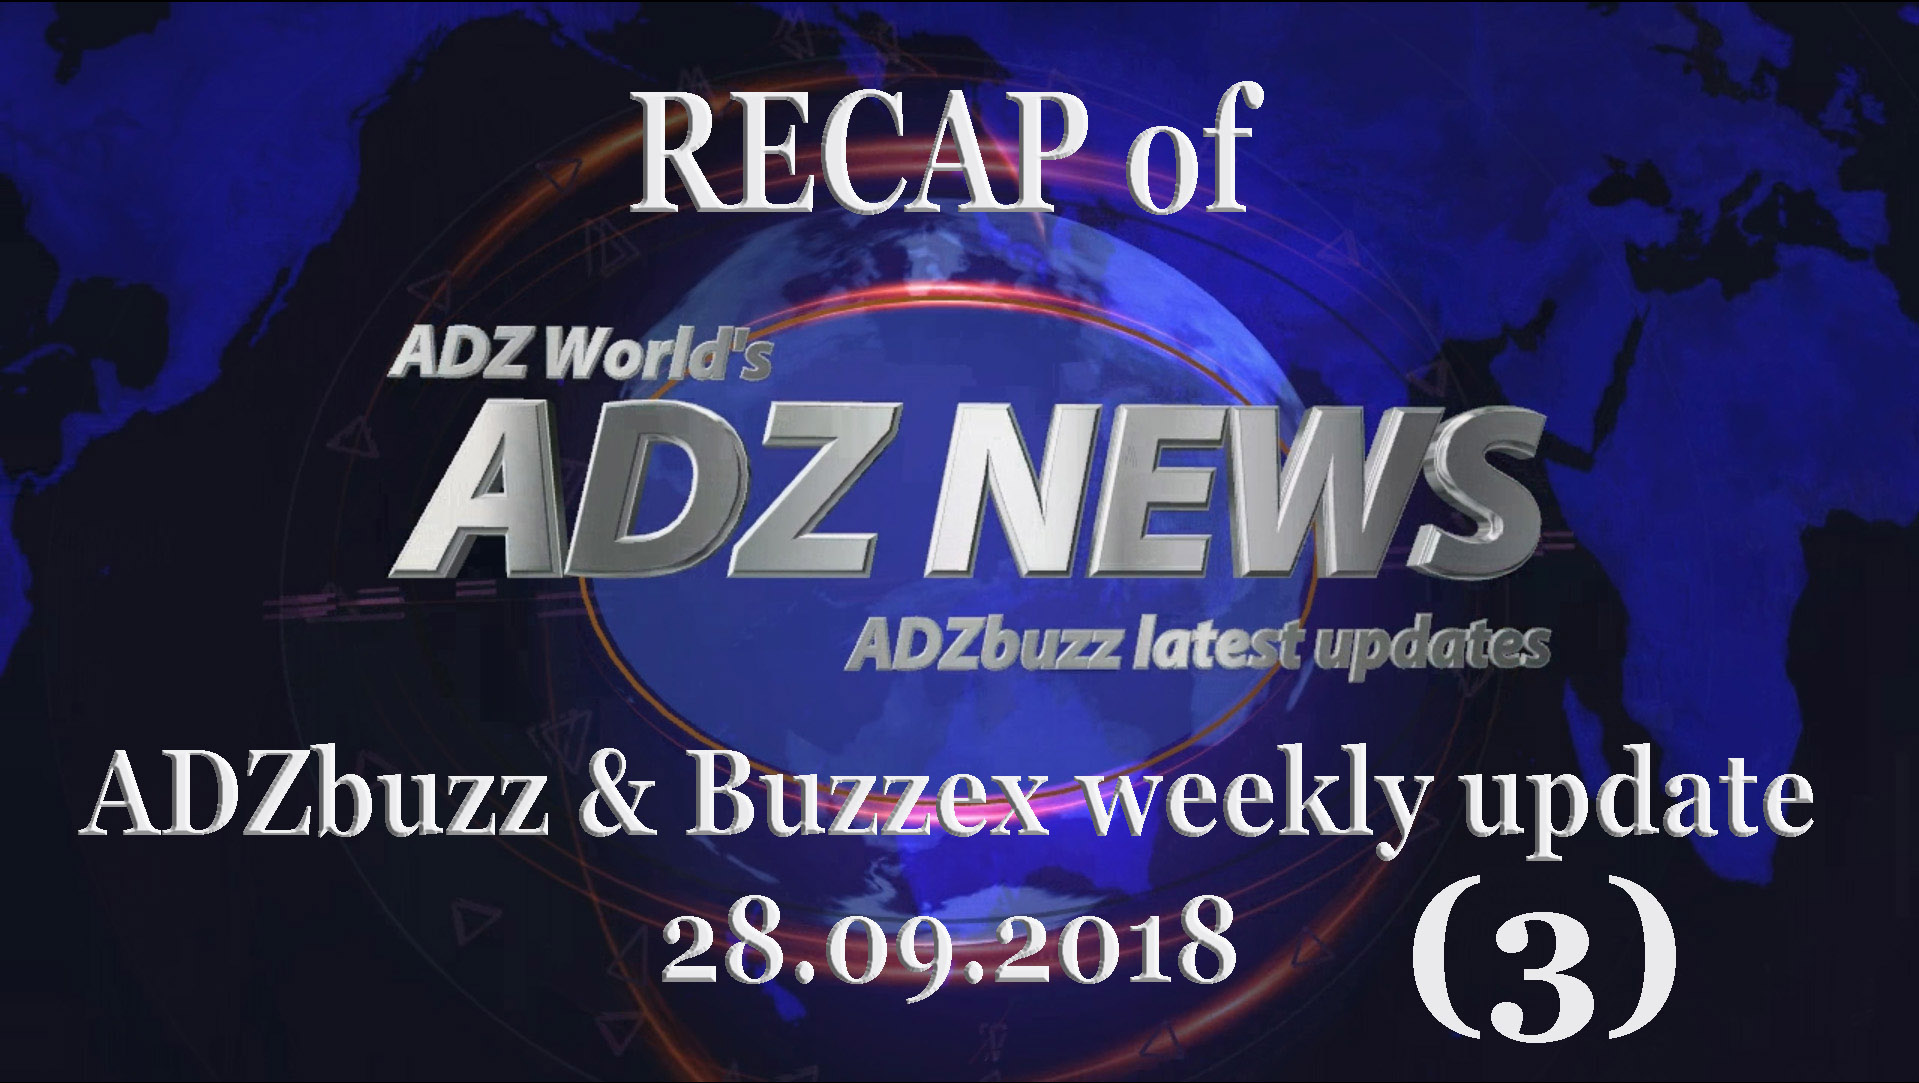 The recap of the ADZbuzz & Buzzex weekly update 3 (28.09.2018)